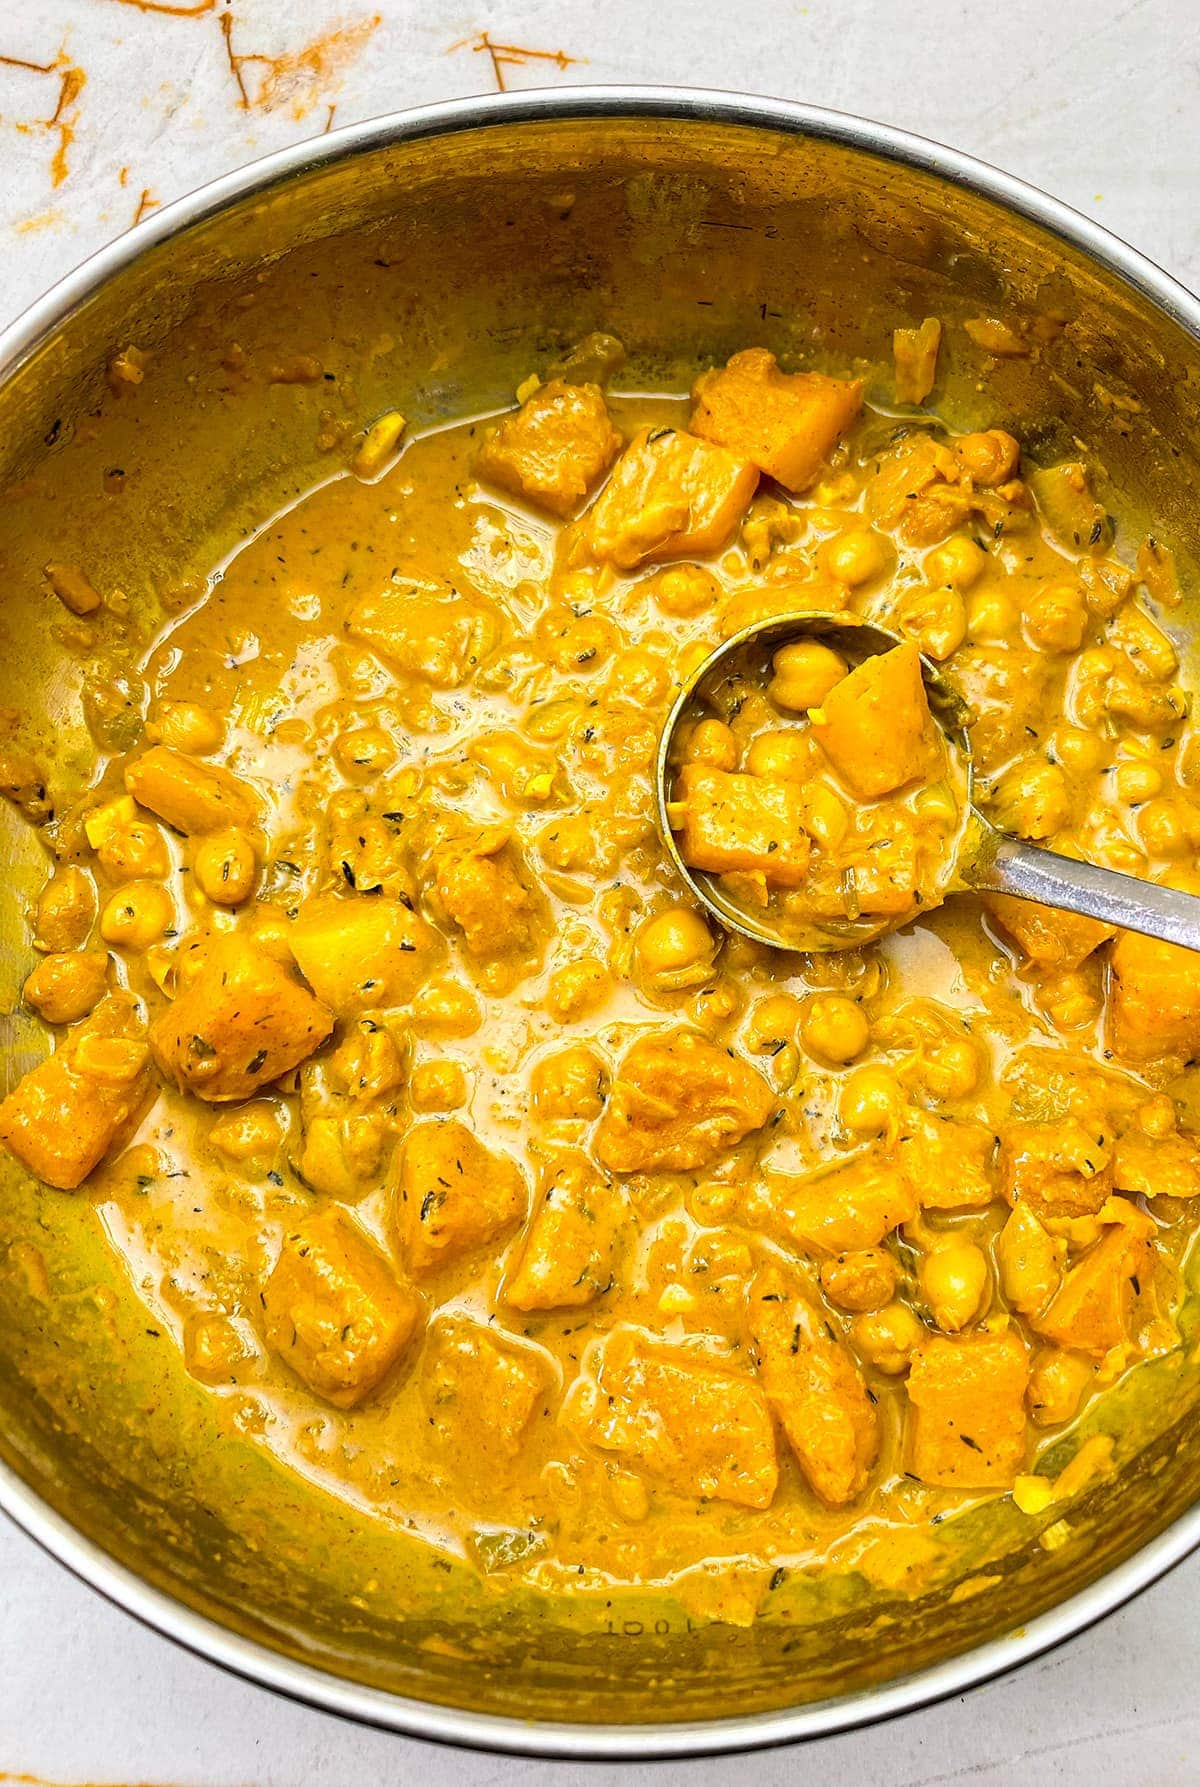 butternut squash chickpea curry in a saucepan on a beige marbled background